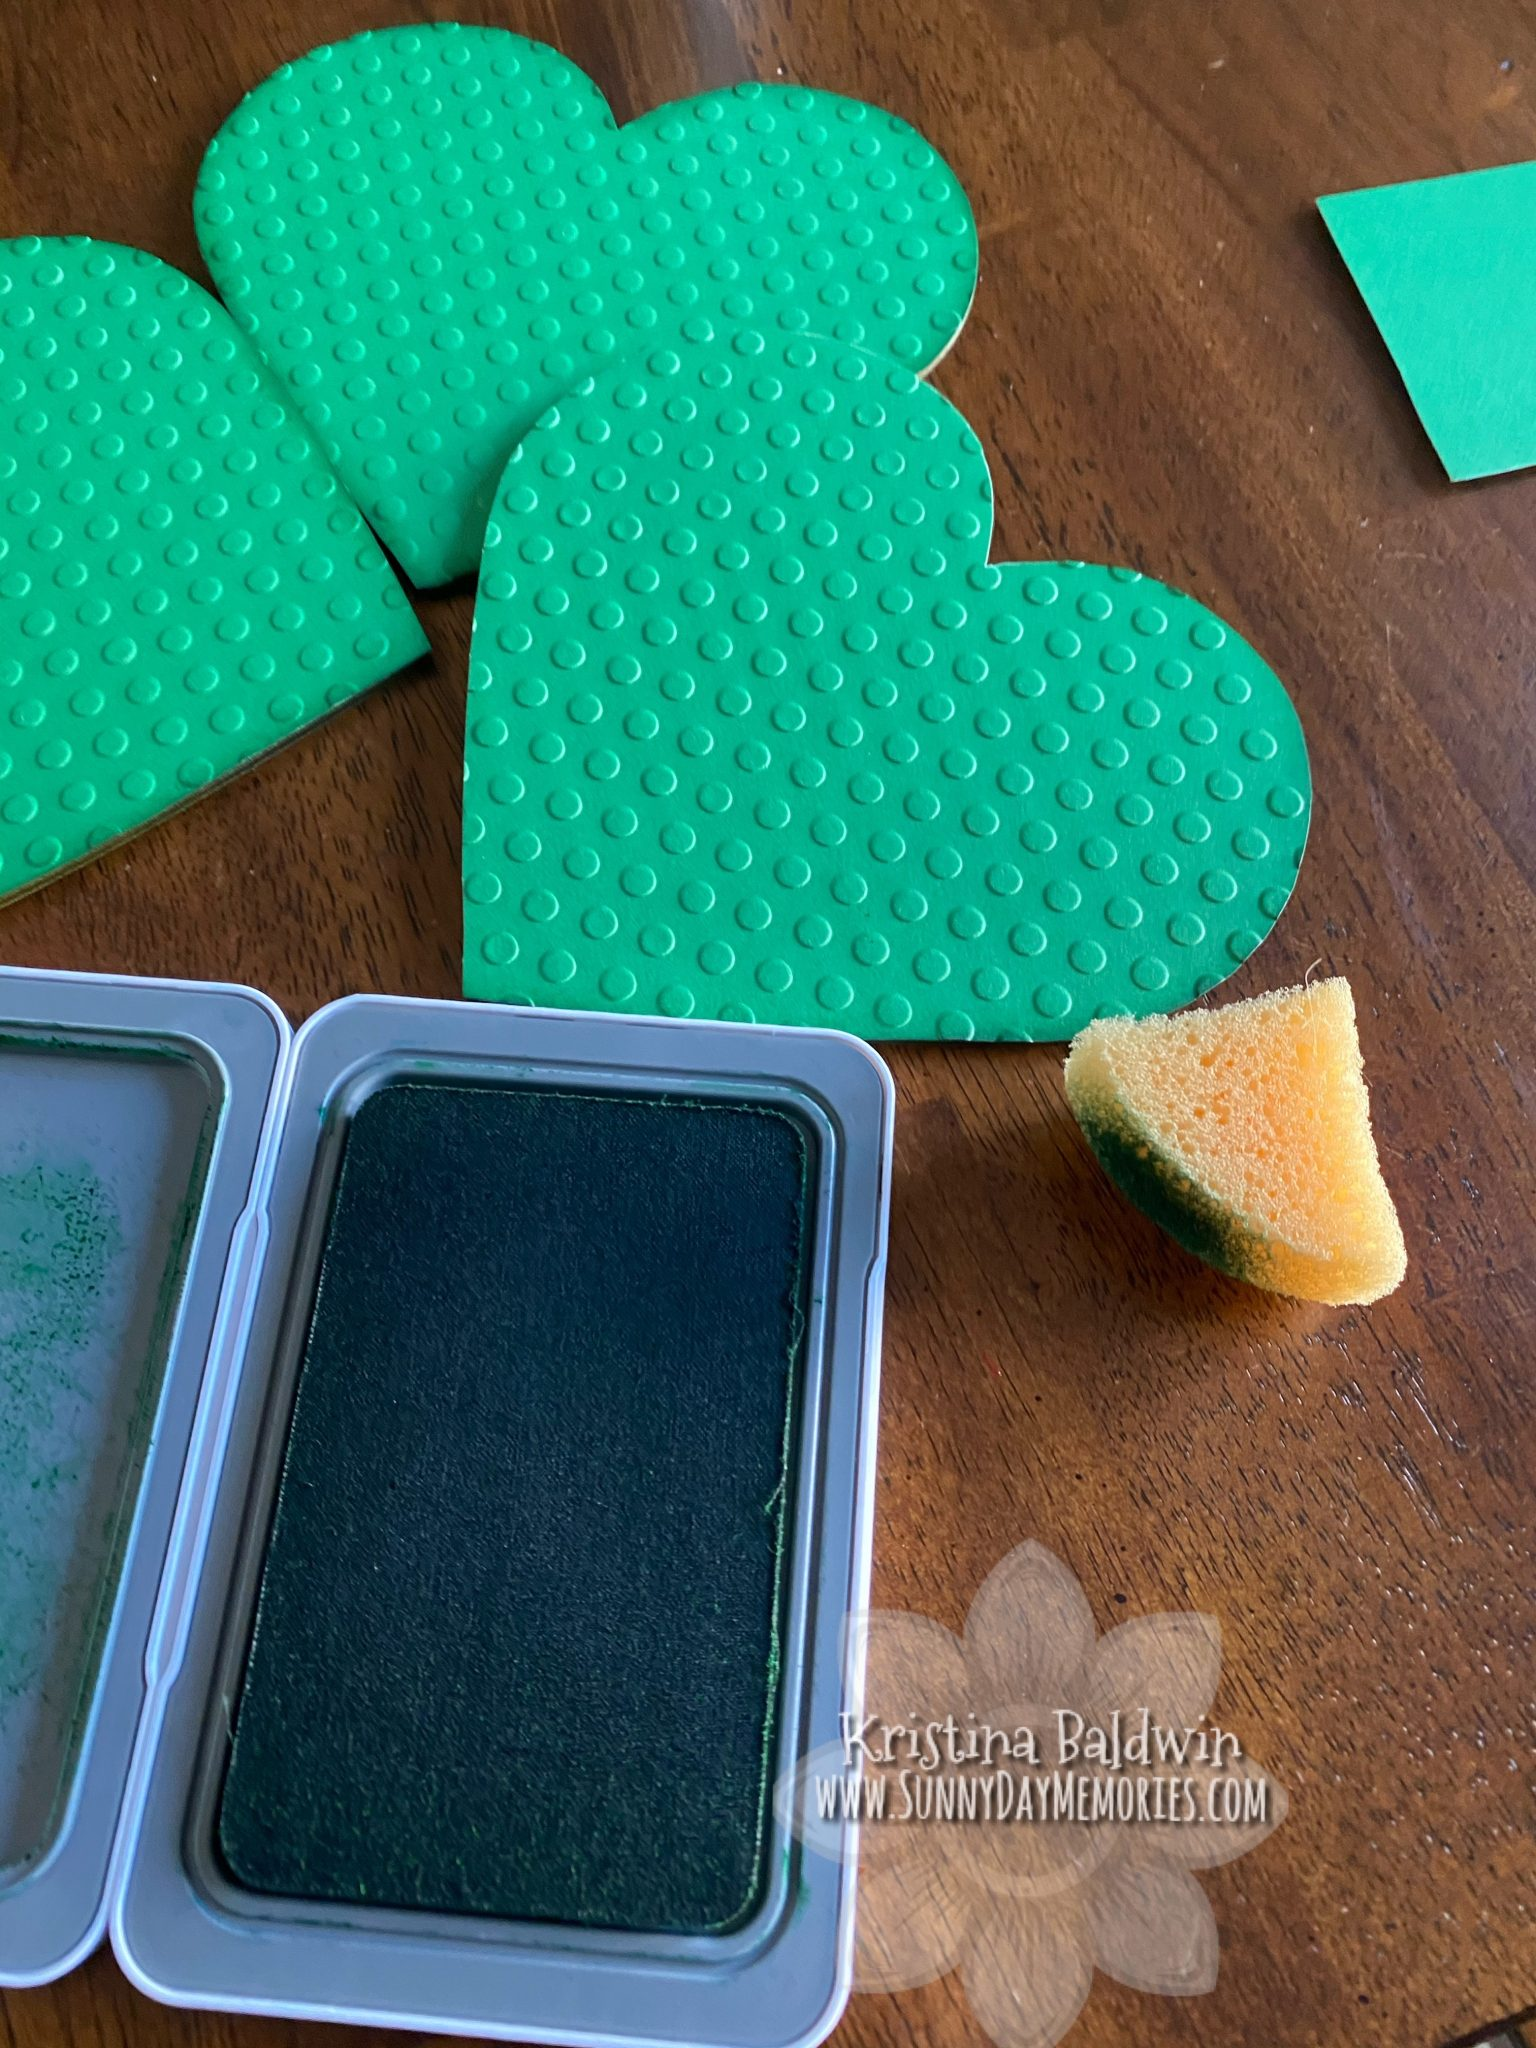 Sponging Shamrock Pieces